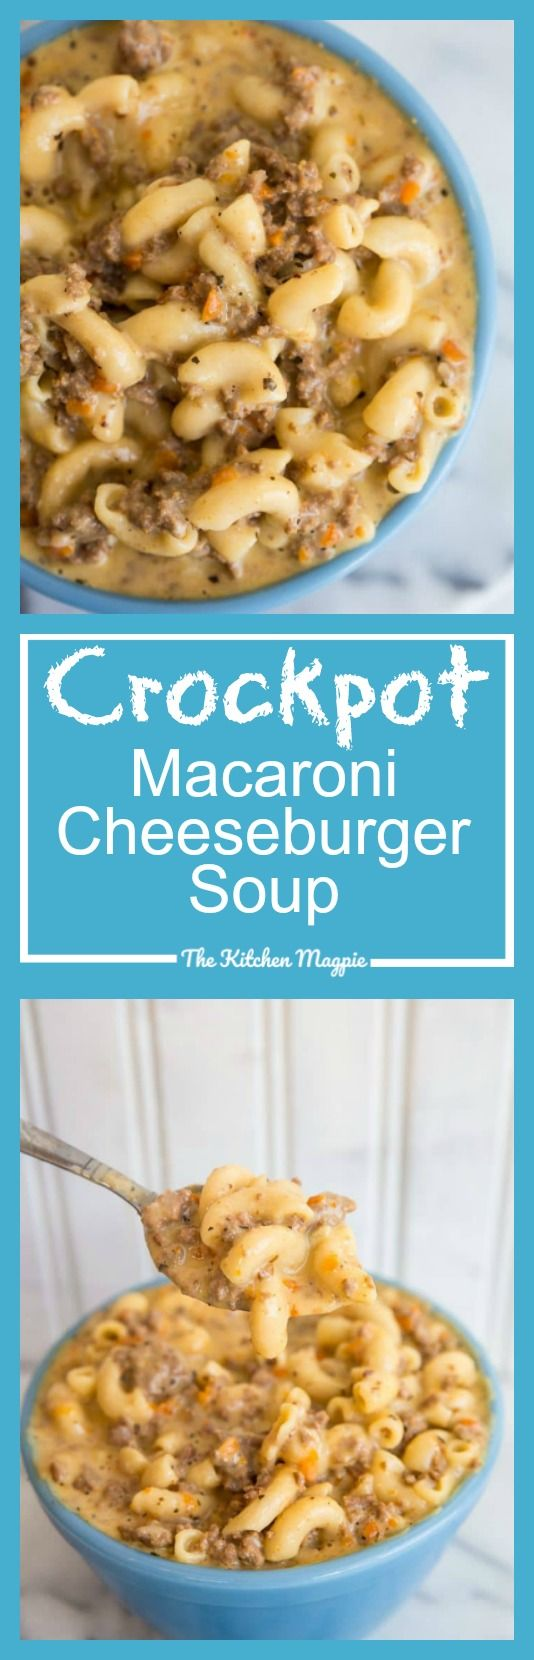 Crockpot Macaroni Cheeseburger Soup - The Kitchen Magpie